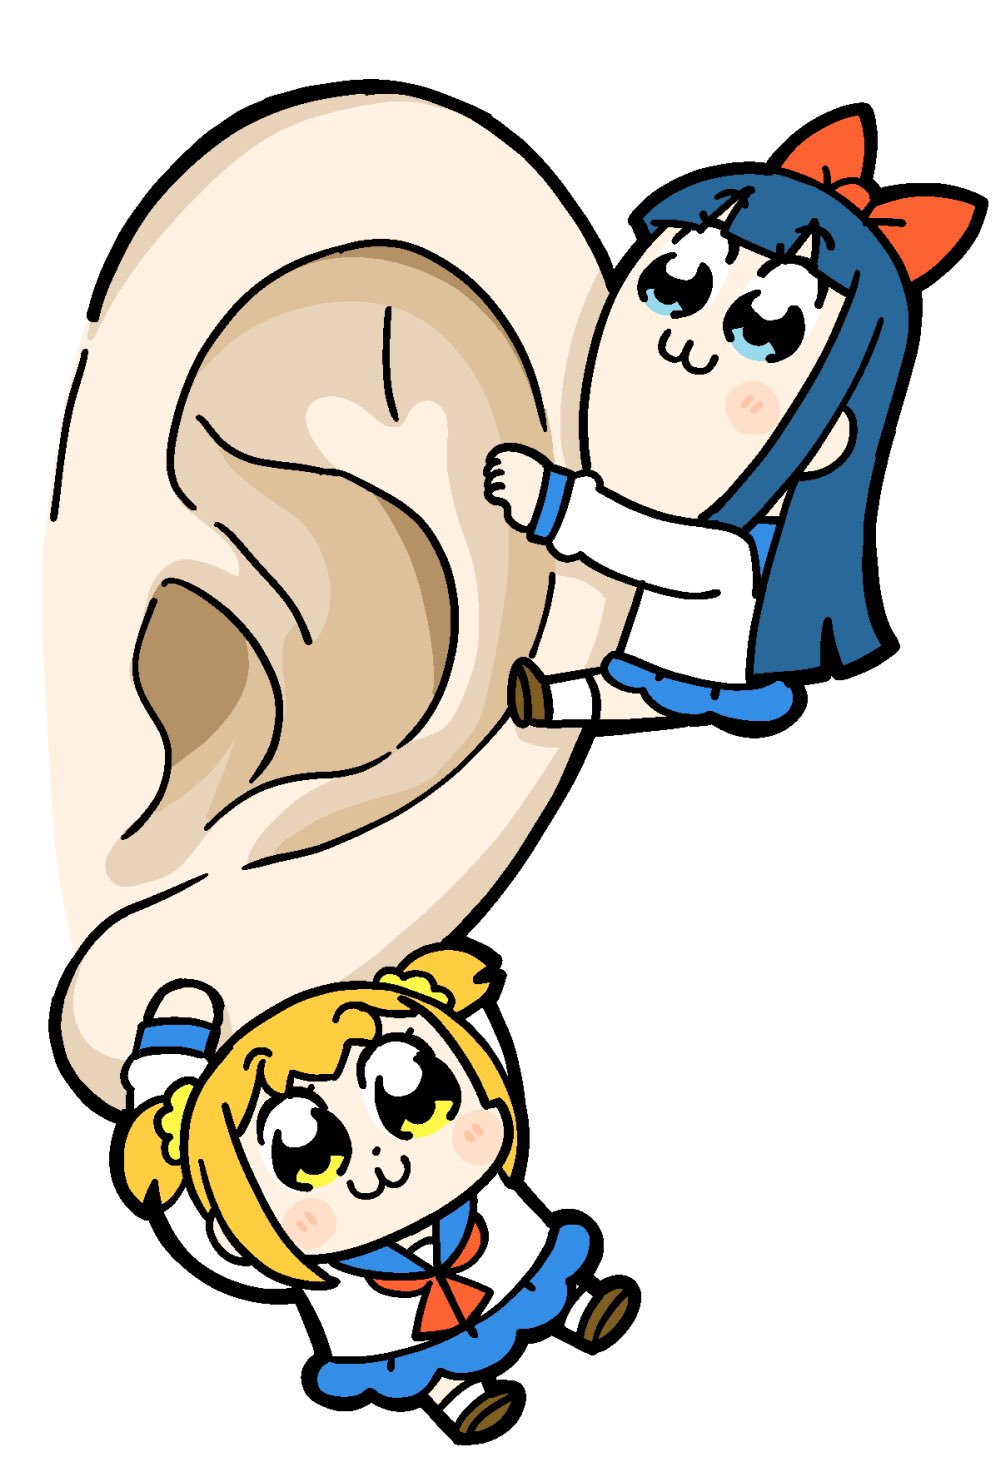 2girls :3 bangs bkub blue_eyes blue_hair blue_sailor_collar blue_skirt blush_stickers bow brown_footwear commentary disembodied_appendage dot_nose ears eyebrows_visible_through_hair hair_bow hair_ornament hair_scrunchie handkerchief hanging highres light_blush long_hair multiple_girls orange_hair pipimi poptepipic popuko red_bow red_neckwear sailor_collar school_uniform scrunchie serafuku shirt shoes short_hair short_twintails sidelocks simple_background skirt socks twintails two_side_up white_background white_legwear white_shirt yellow_eyes yellow_scrunchie